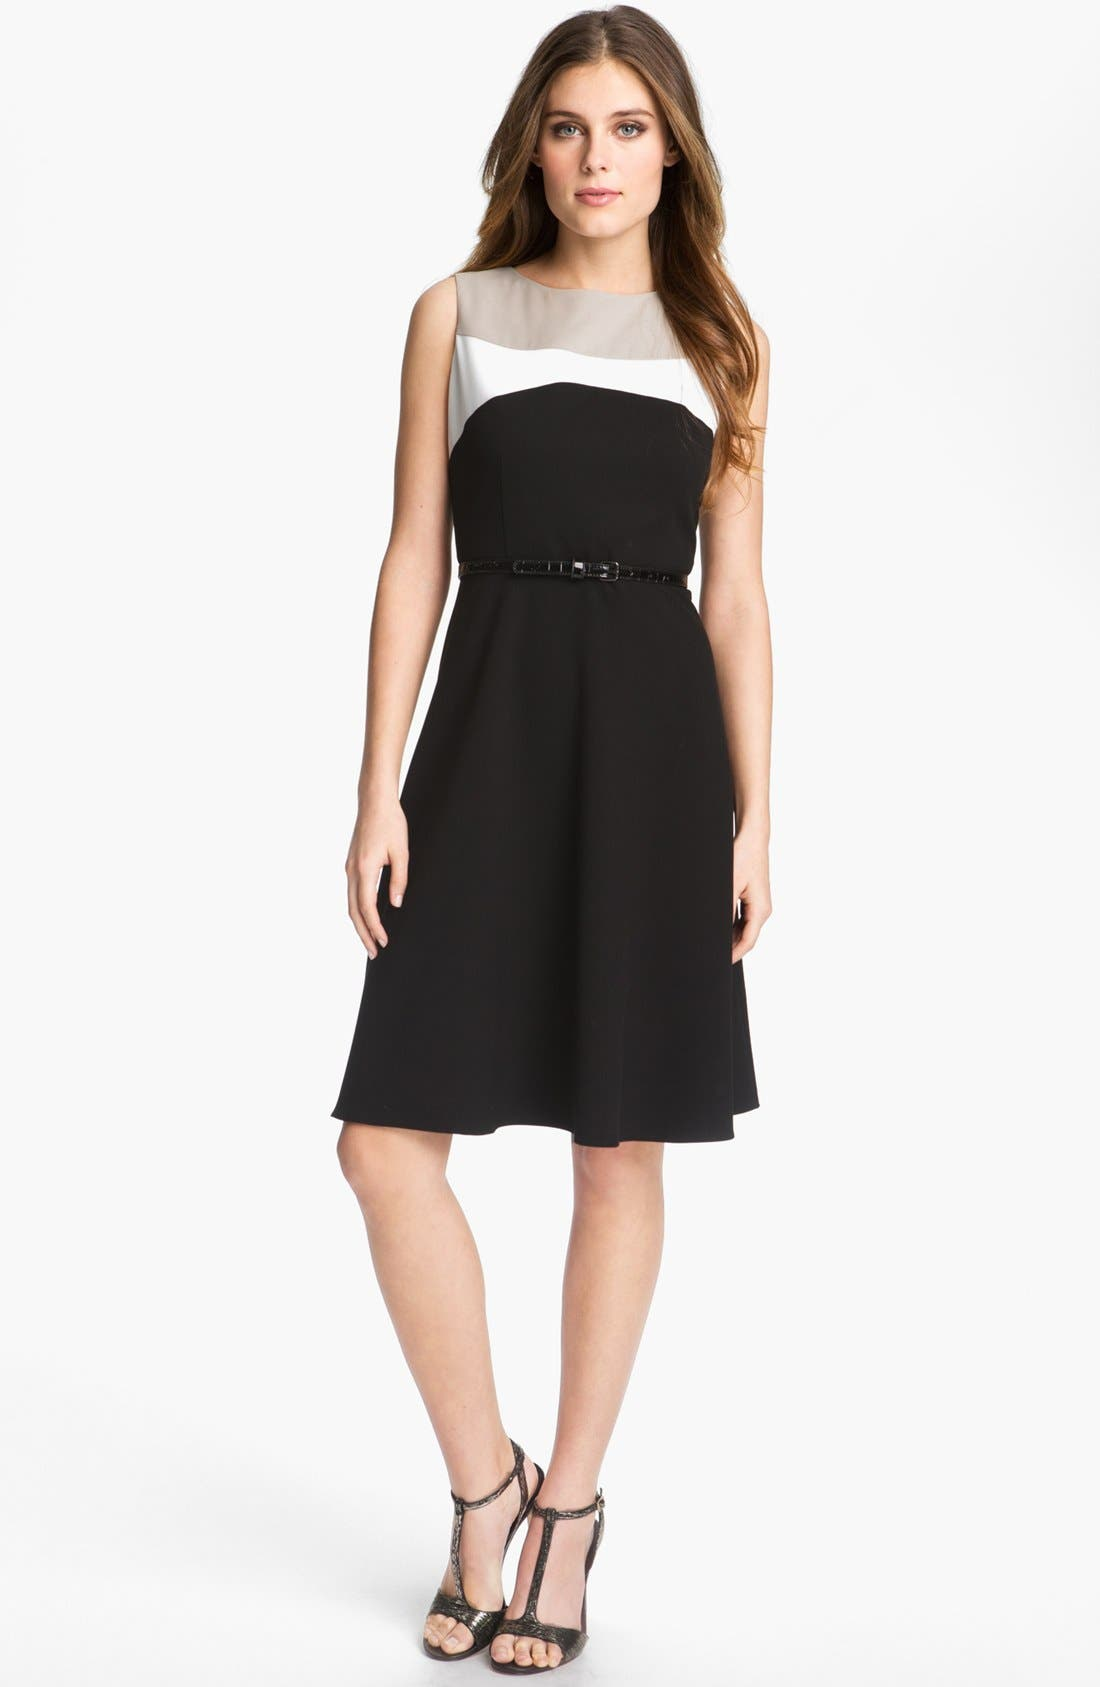 Alternate Image 1 Selected - Calvin Klein Colorblock Fit & Flare Dress (Petite)